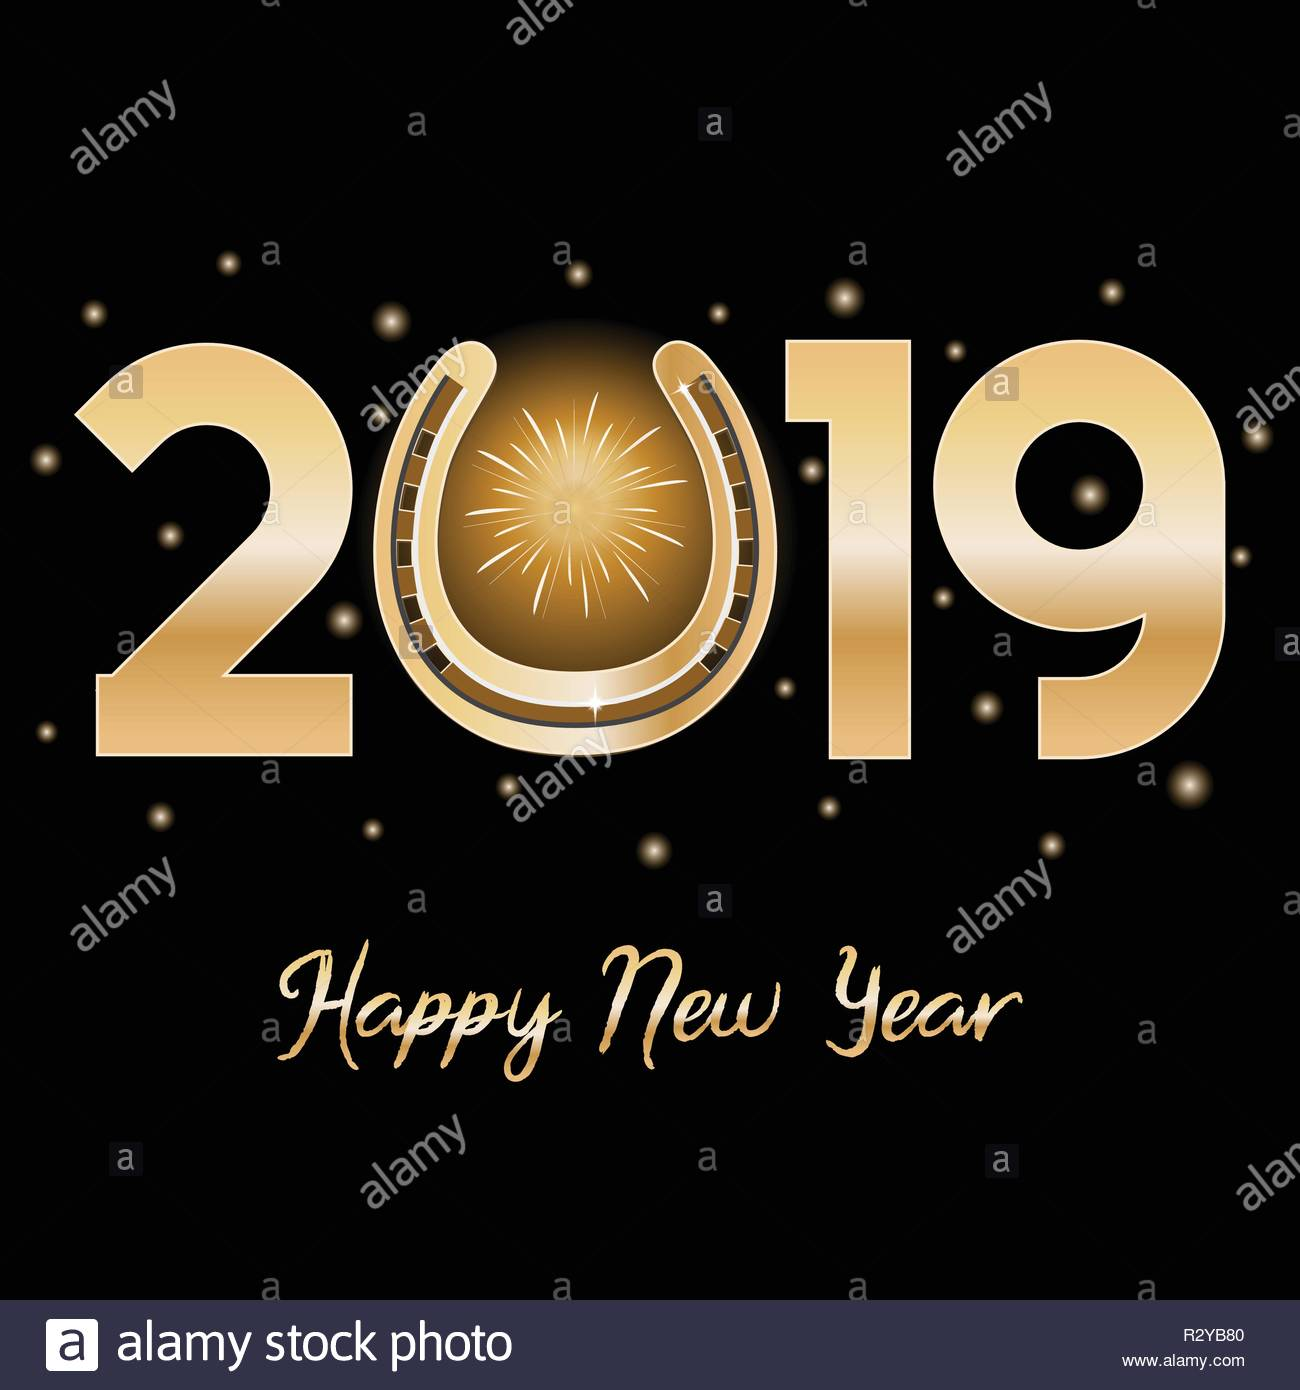 Happy New Year message depicting gold lettering and horseshoe. Isolated on a black background. - Stock Image